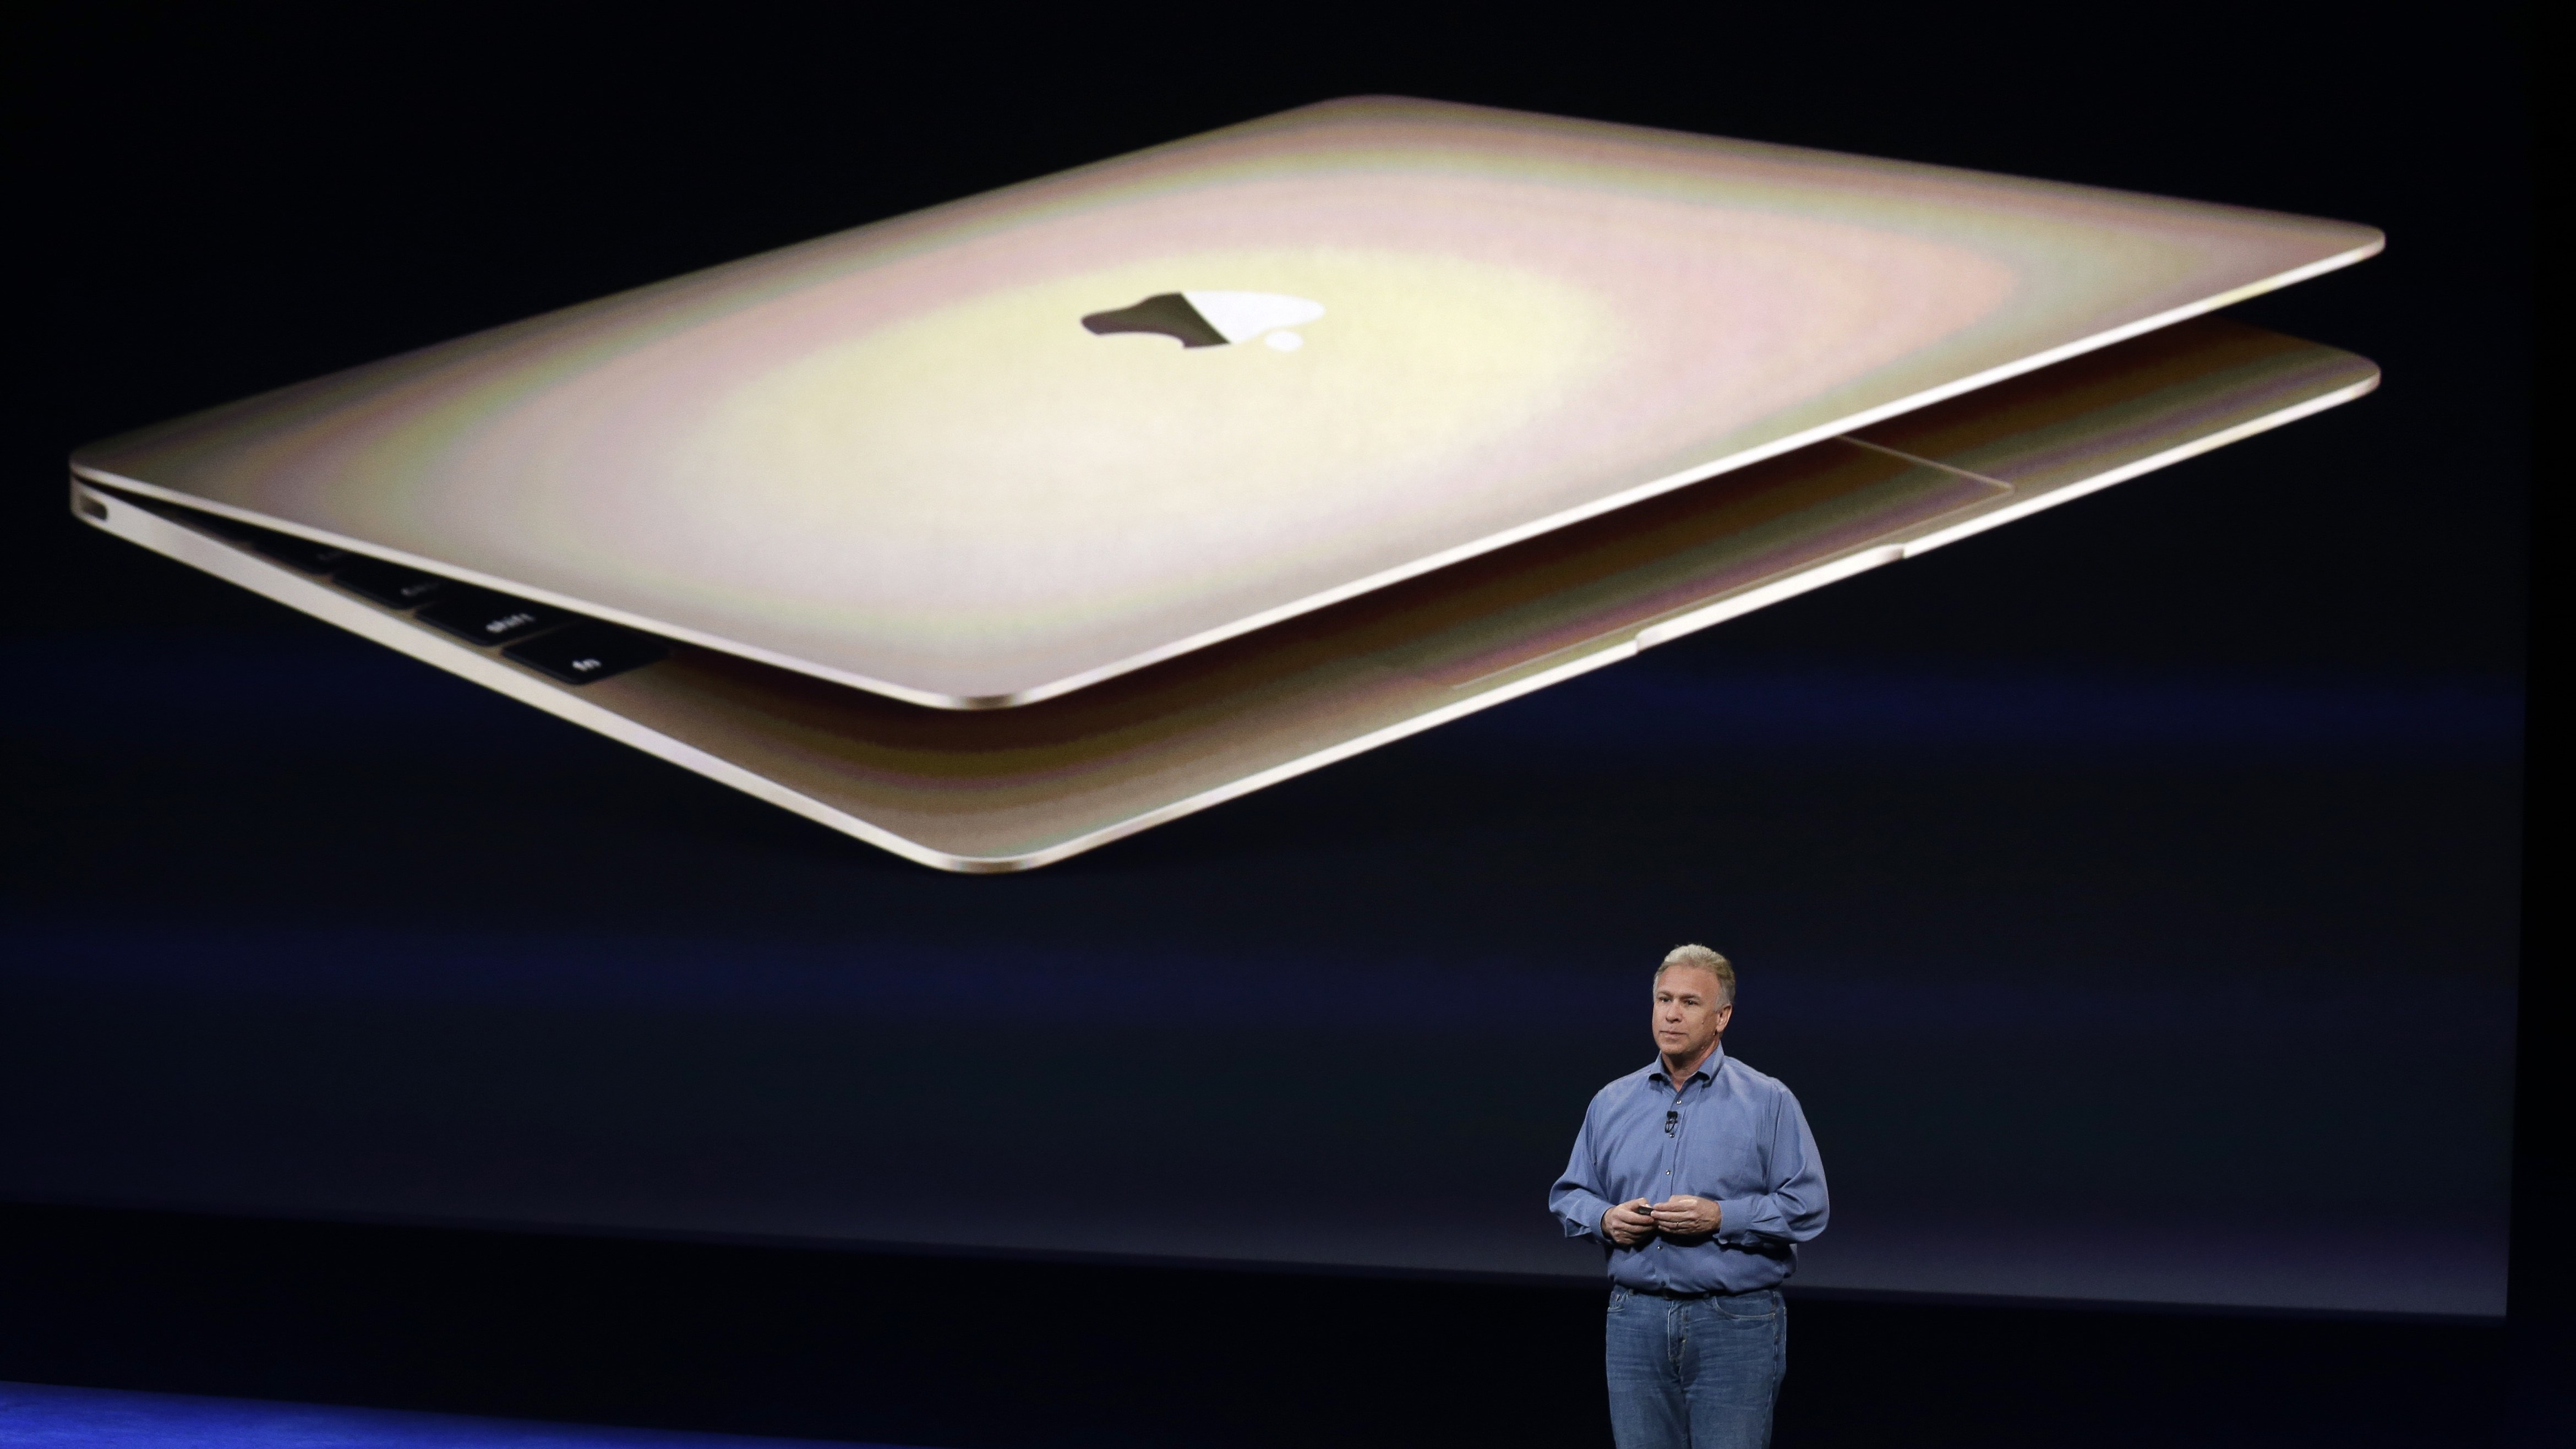 Apple executive Phil Schiller, in his own words, on why the new MacBook only has one port